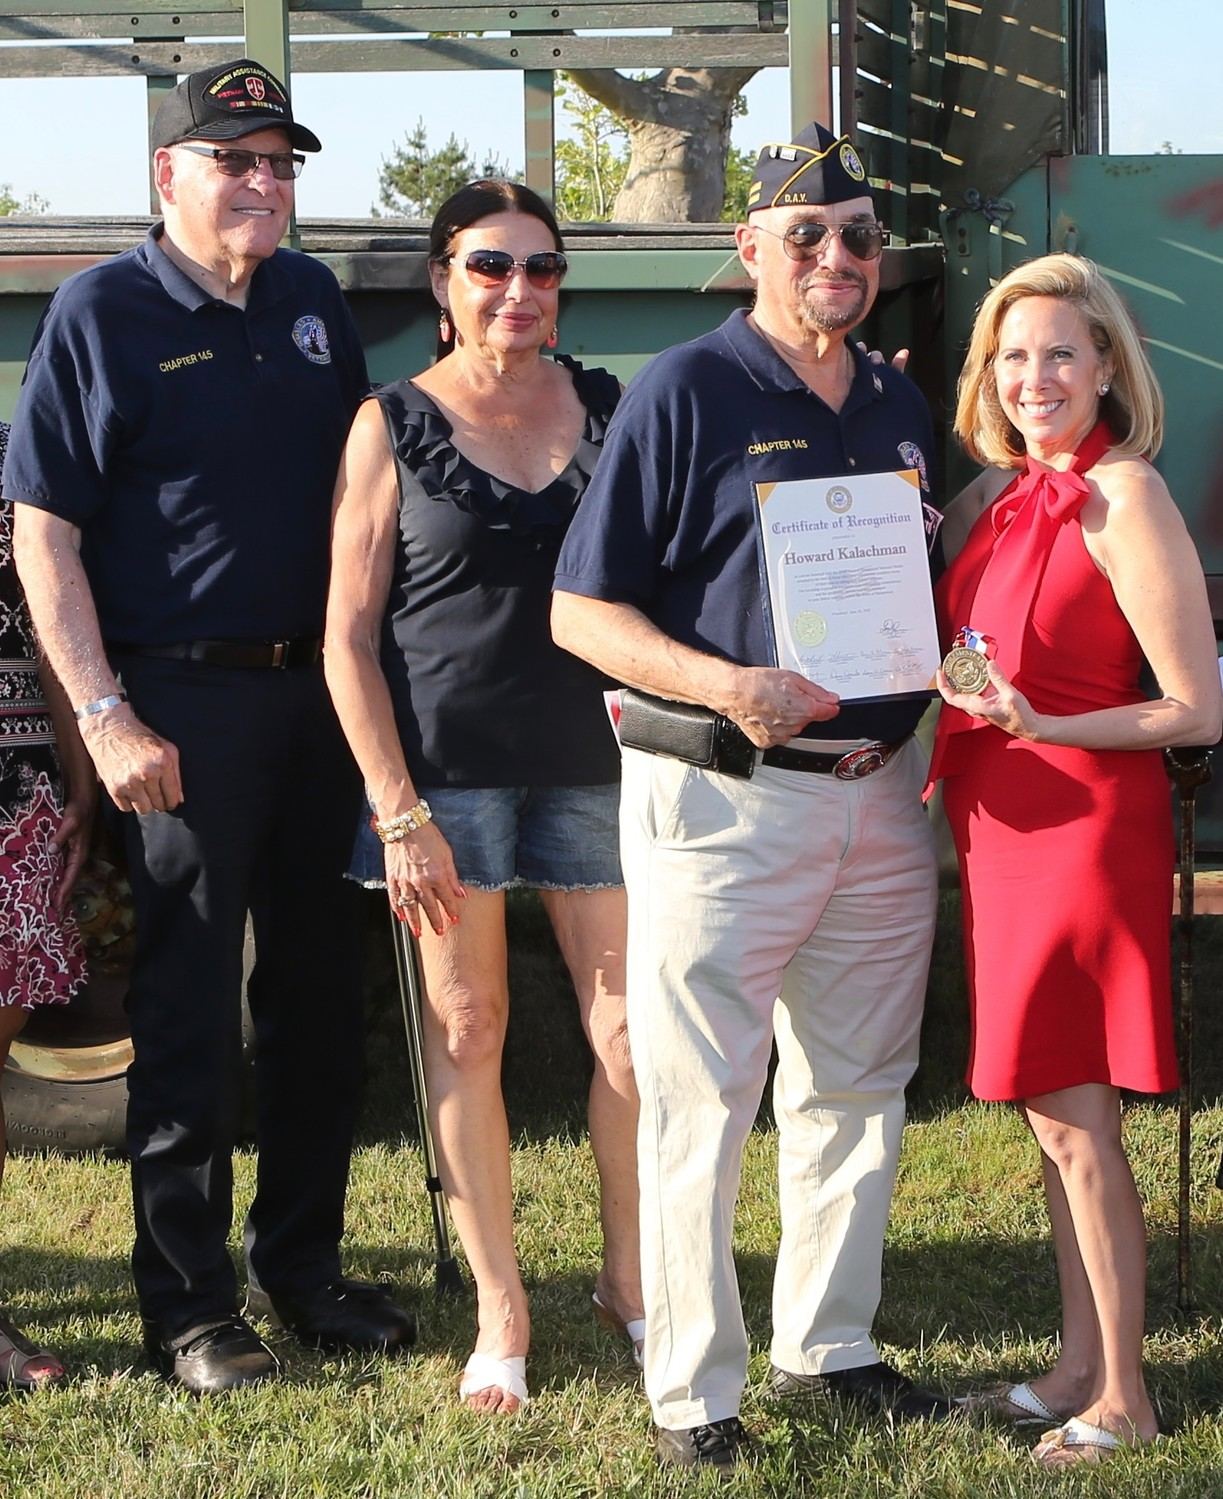 Howard Kalachman, second from right, received the Veterans Medal from Town Supervisor Laura Gillen, far right, at the Salute to Veterans on June 30. They were joined by Disabled American Veterans Chapter 145 member James Brown and Kalachman's sister, Marilyn Diamond.